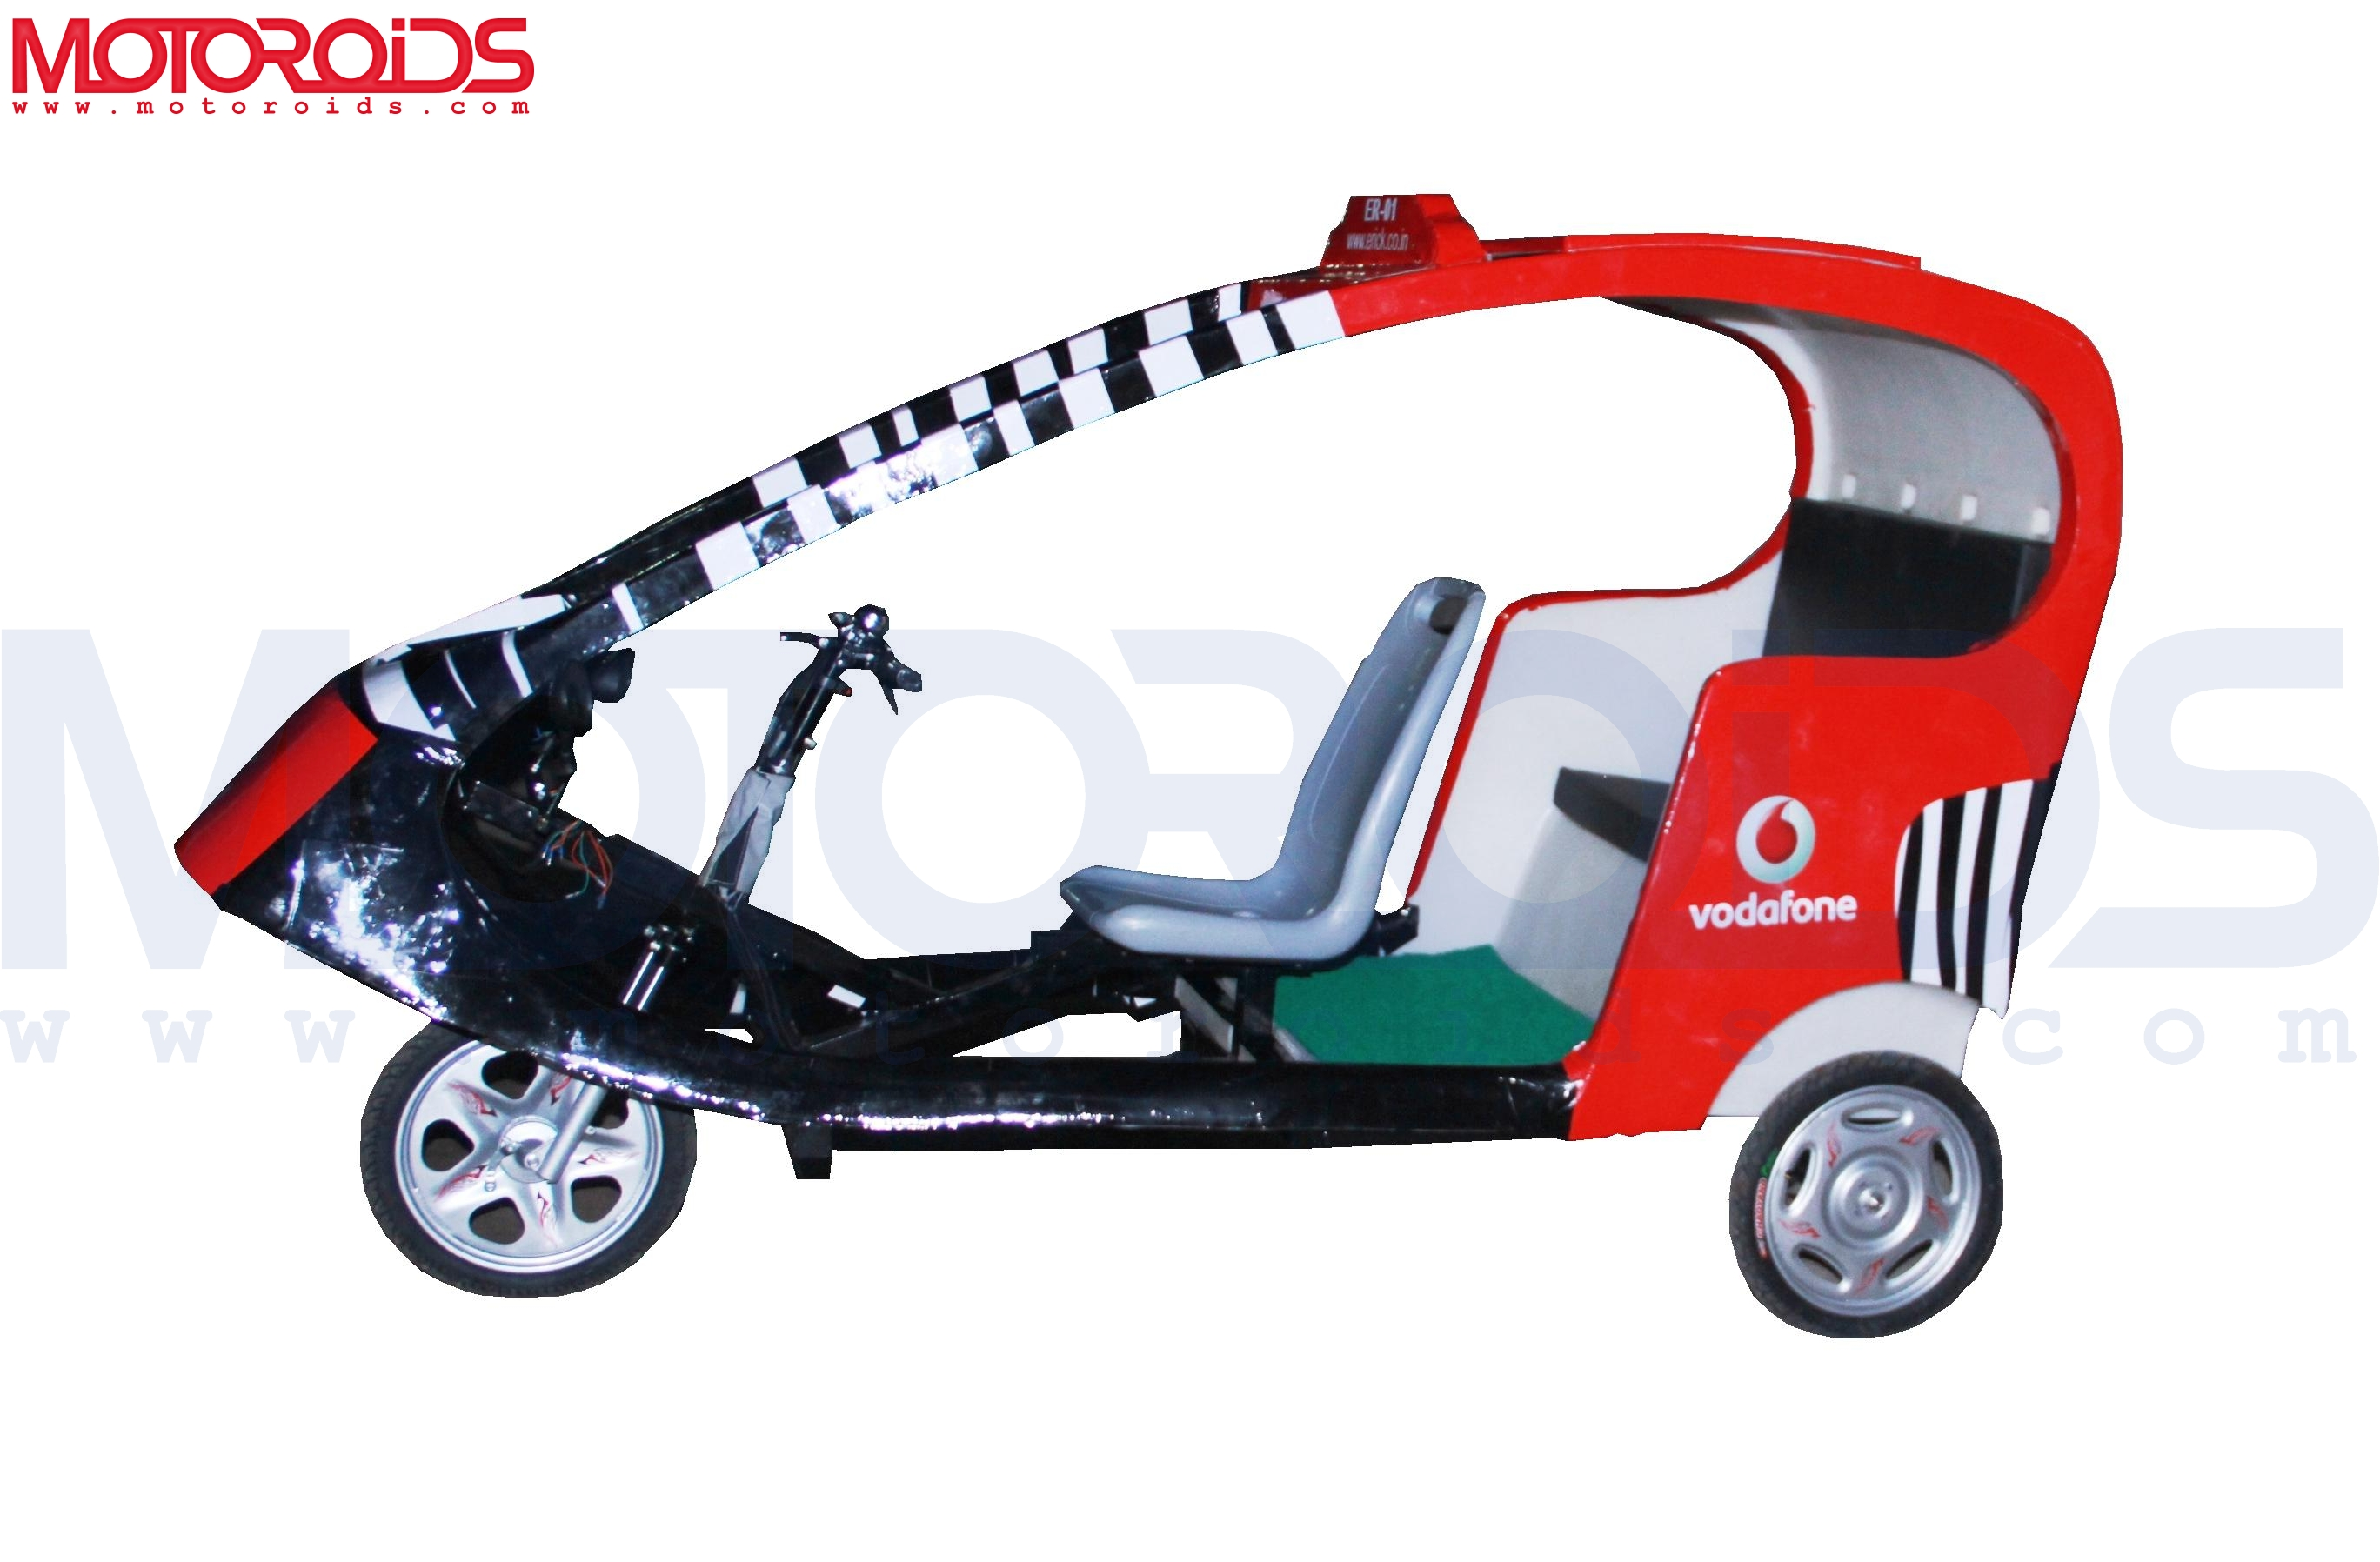 Vodafone has introduced the E-rick (electronic rickshaw) in Delhi. More details on Motoroids.com